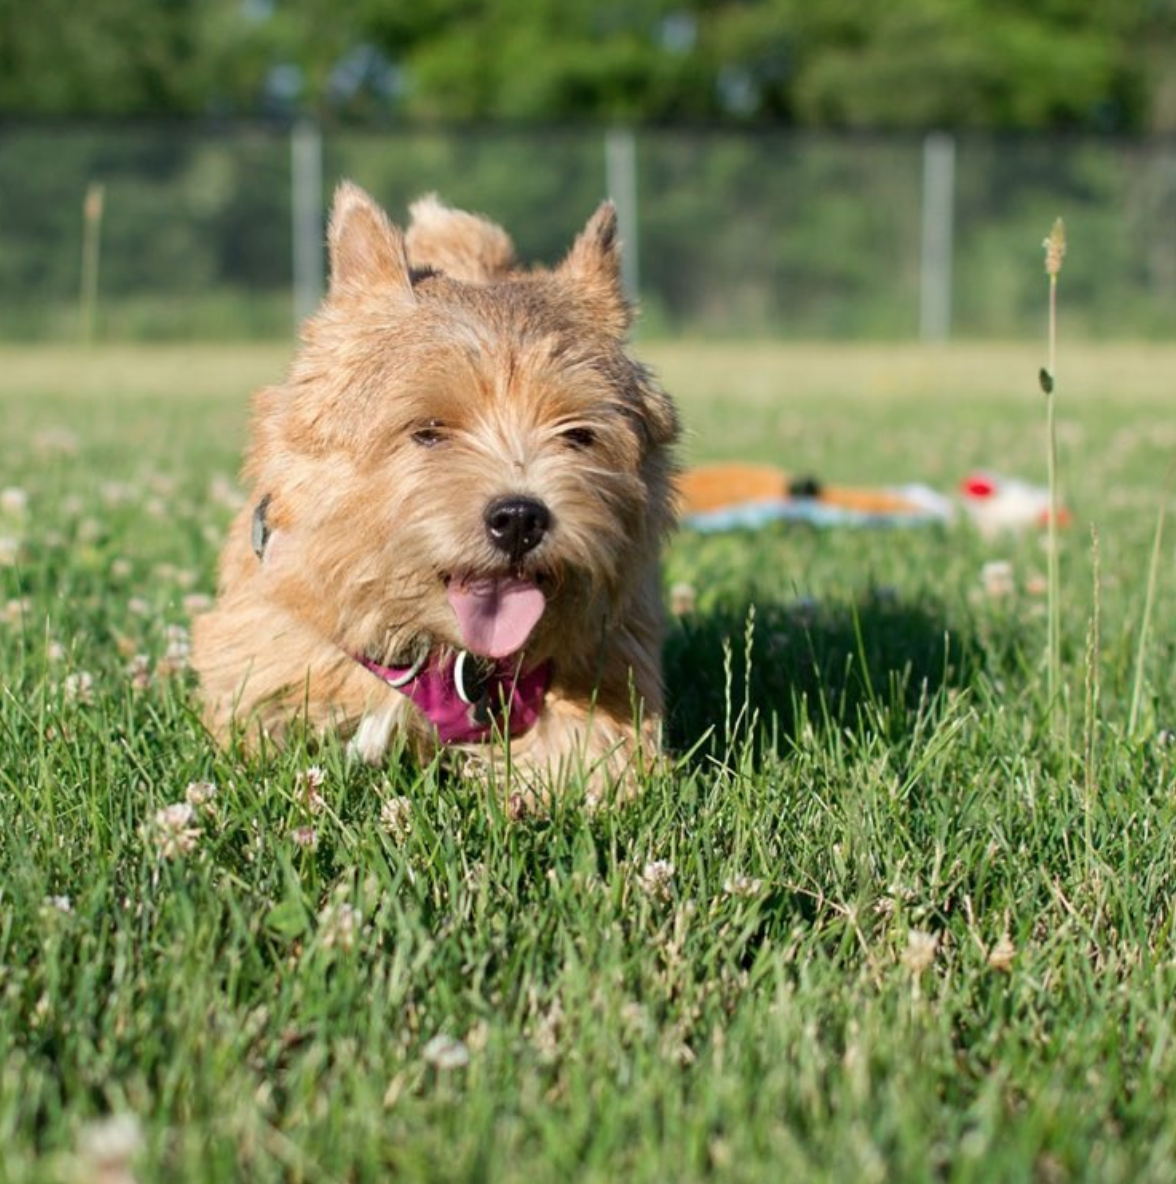 A photo of my favorite dog running through a field